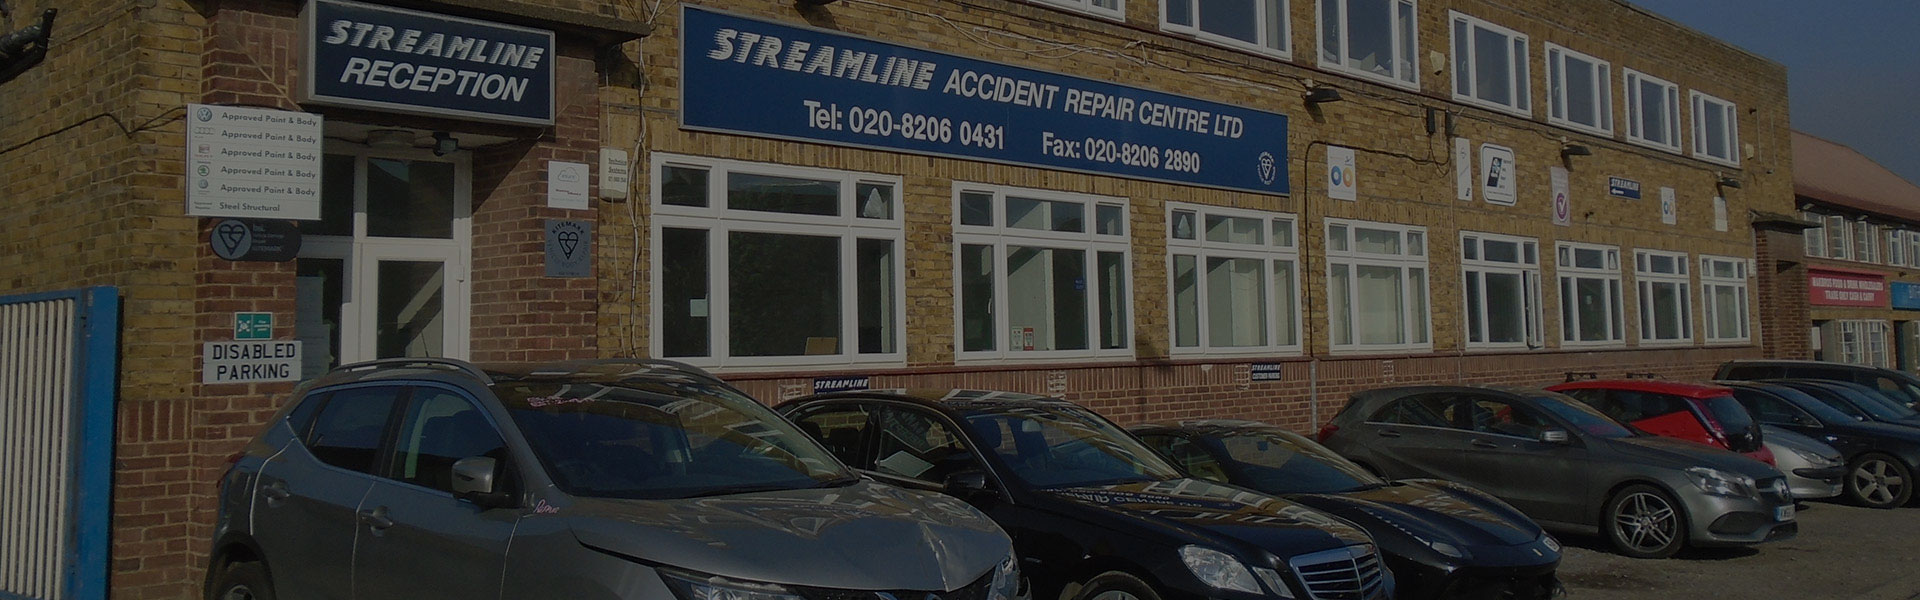 Welcome to Streamline Accident Repair Centre